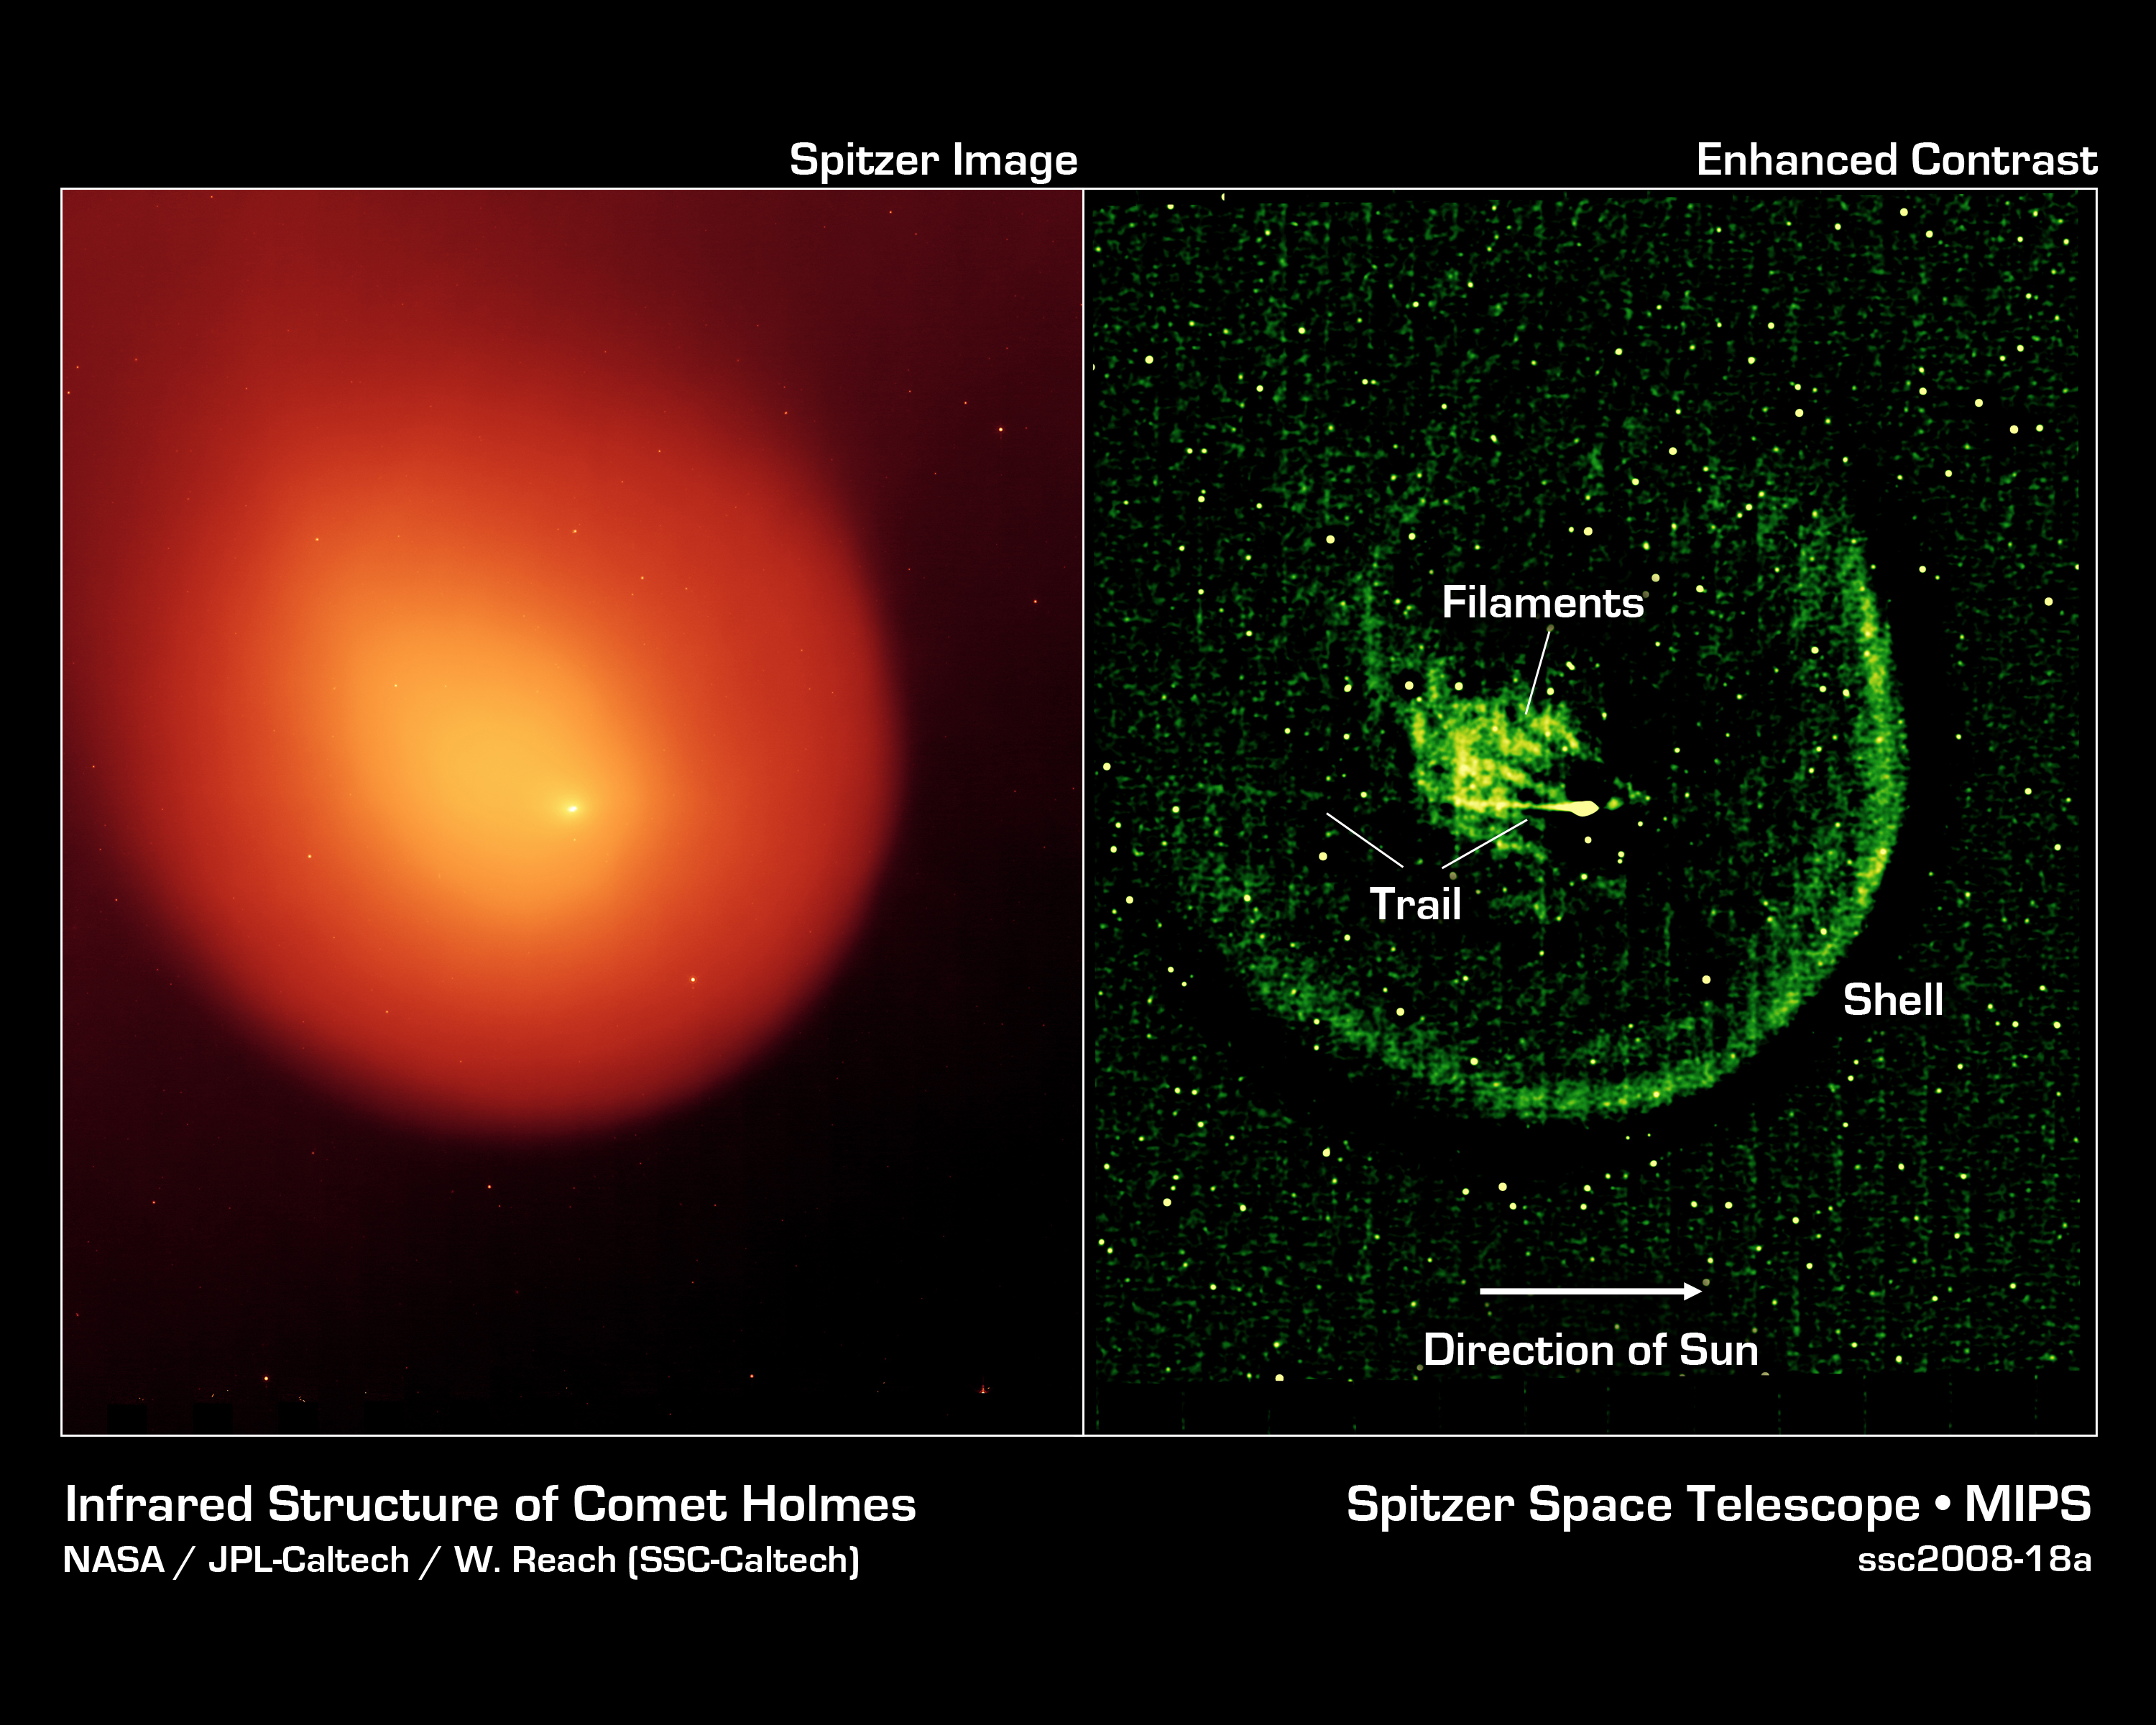 Structure of Comet Holmes in infrared, as seen by an infrared space telescope - NASA/JPL - Wikimedia Commons